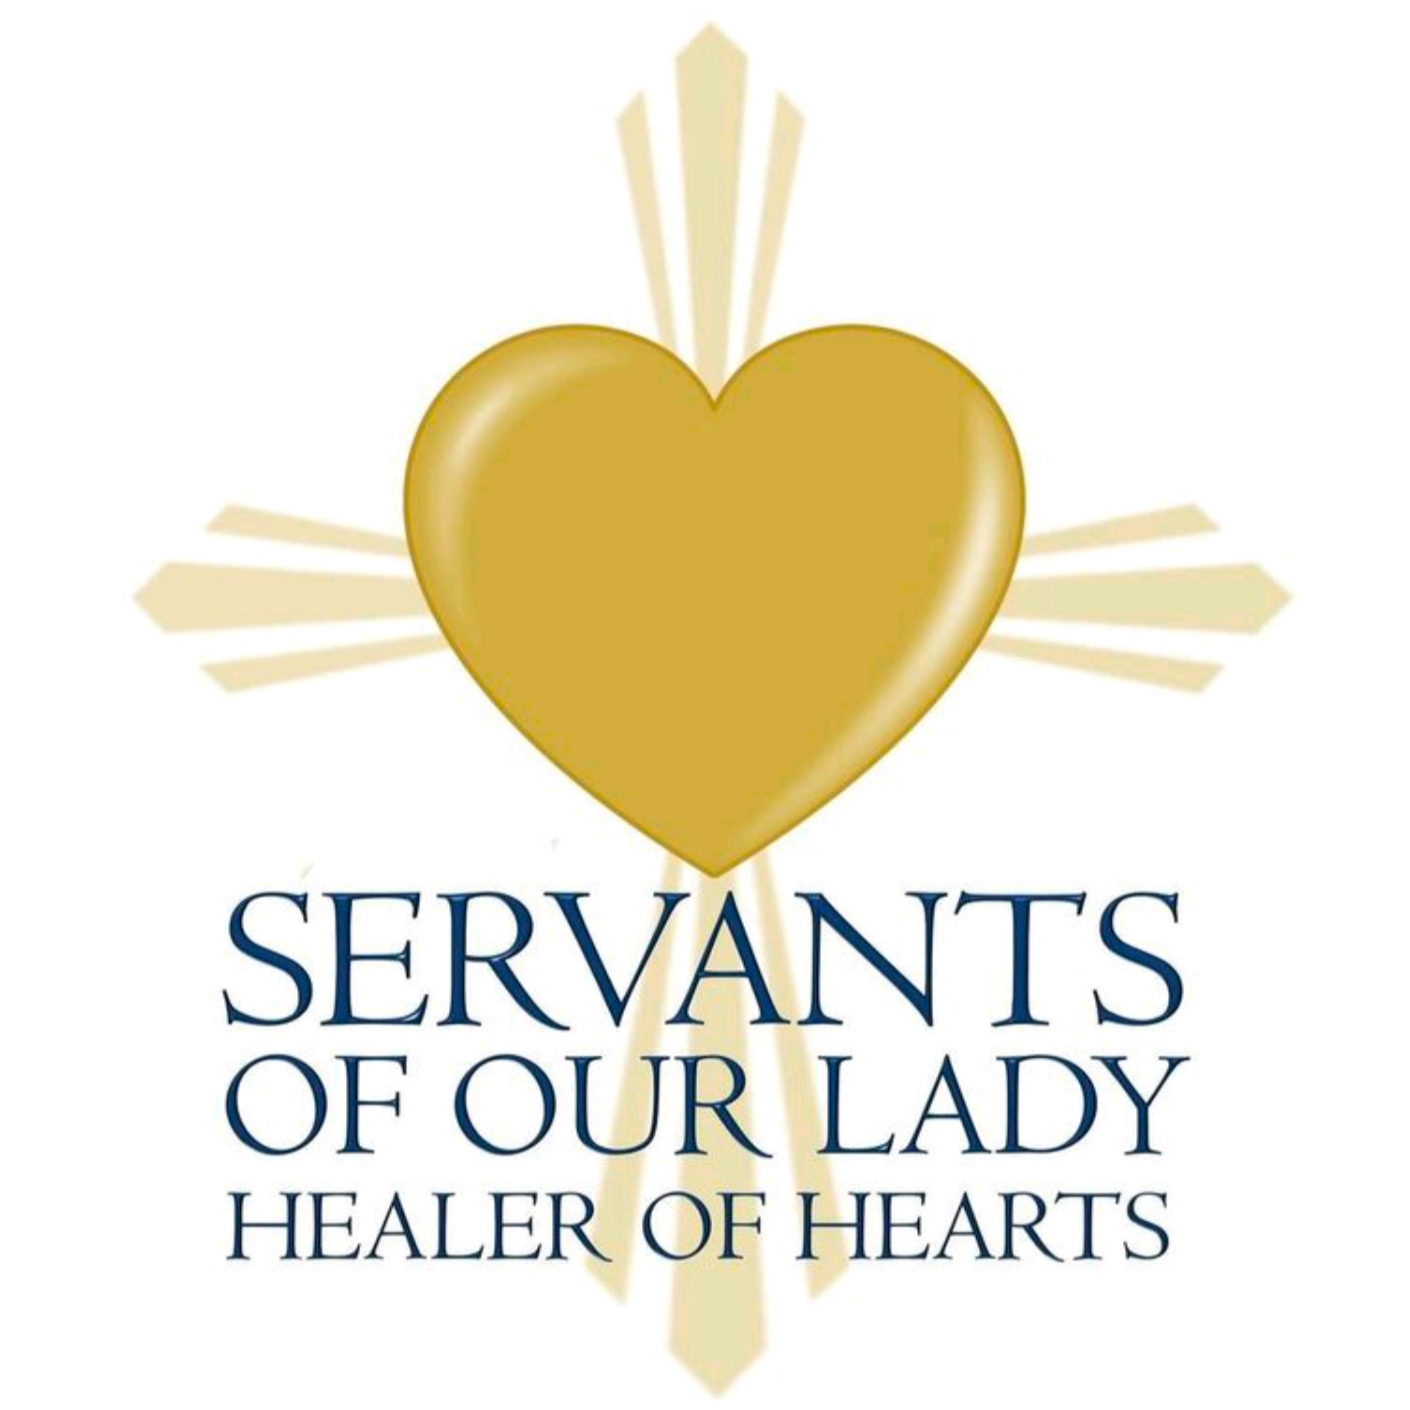 Society of Our Lady Healer of Hearts logo